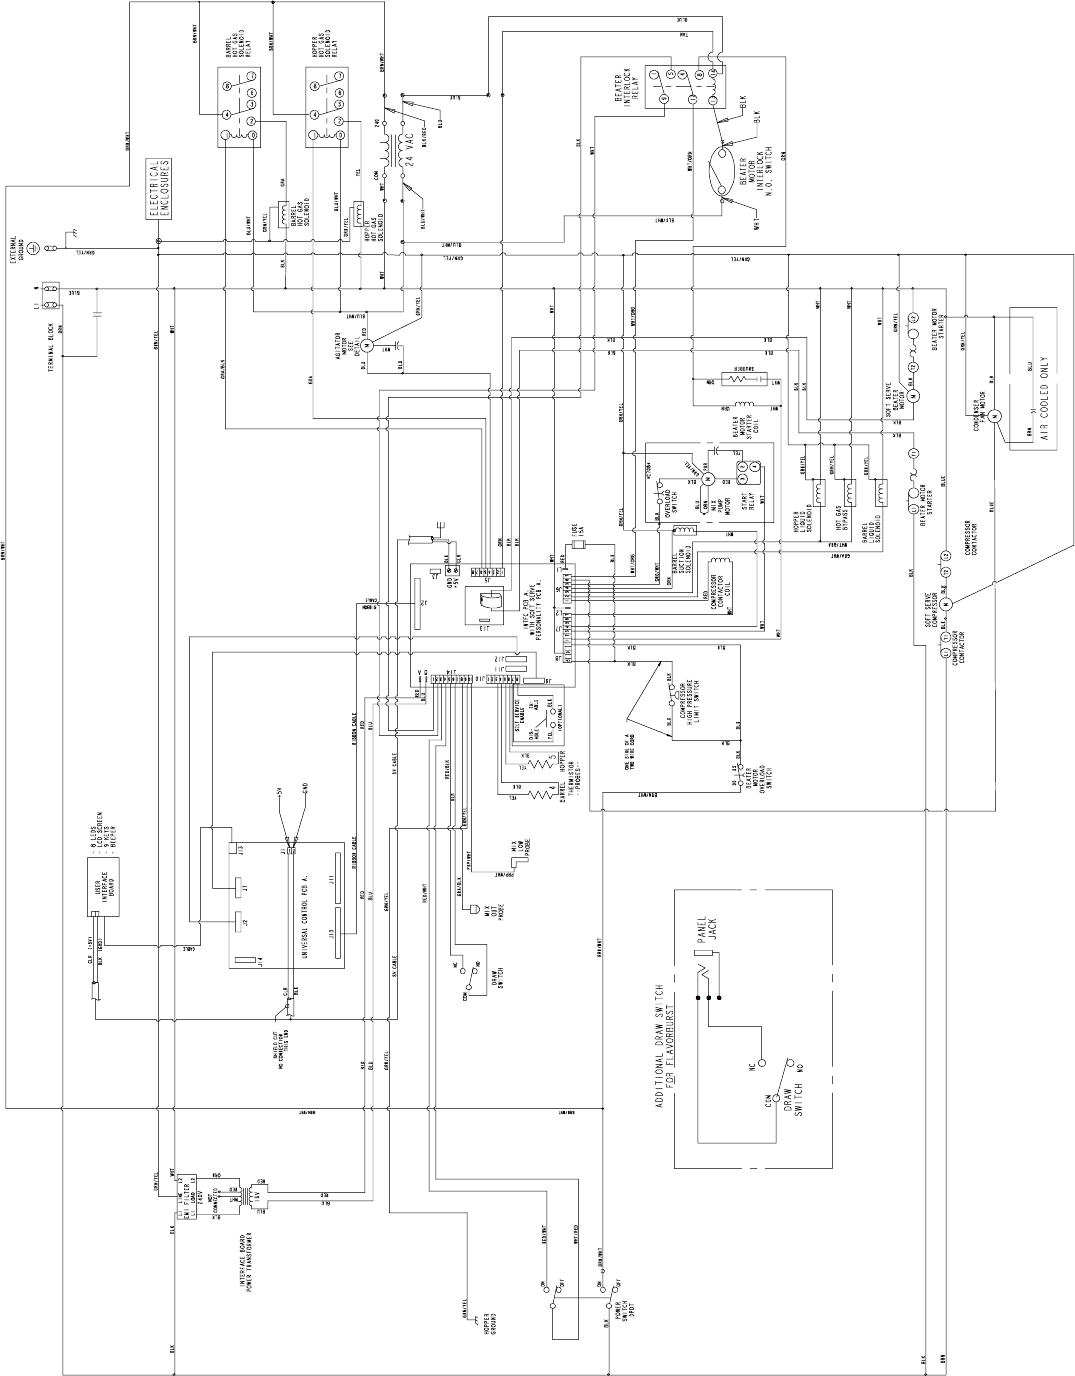 Solarix Prs 1515 Wiring Diagram Detailed Diagrams Taylor C602 Library Of U2022 5 Way Rotary Switch Guitar